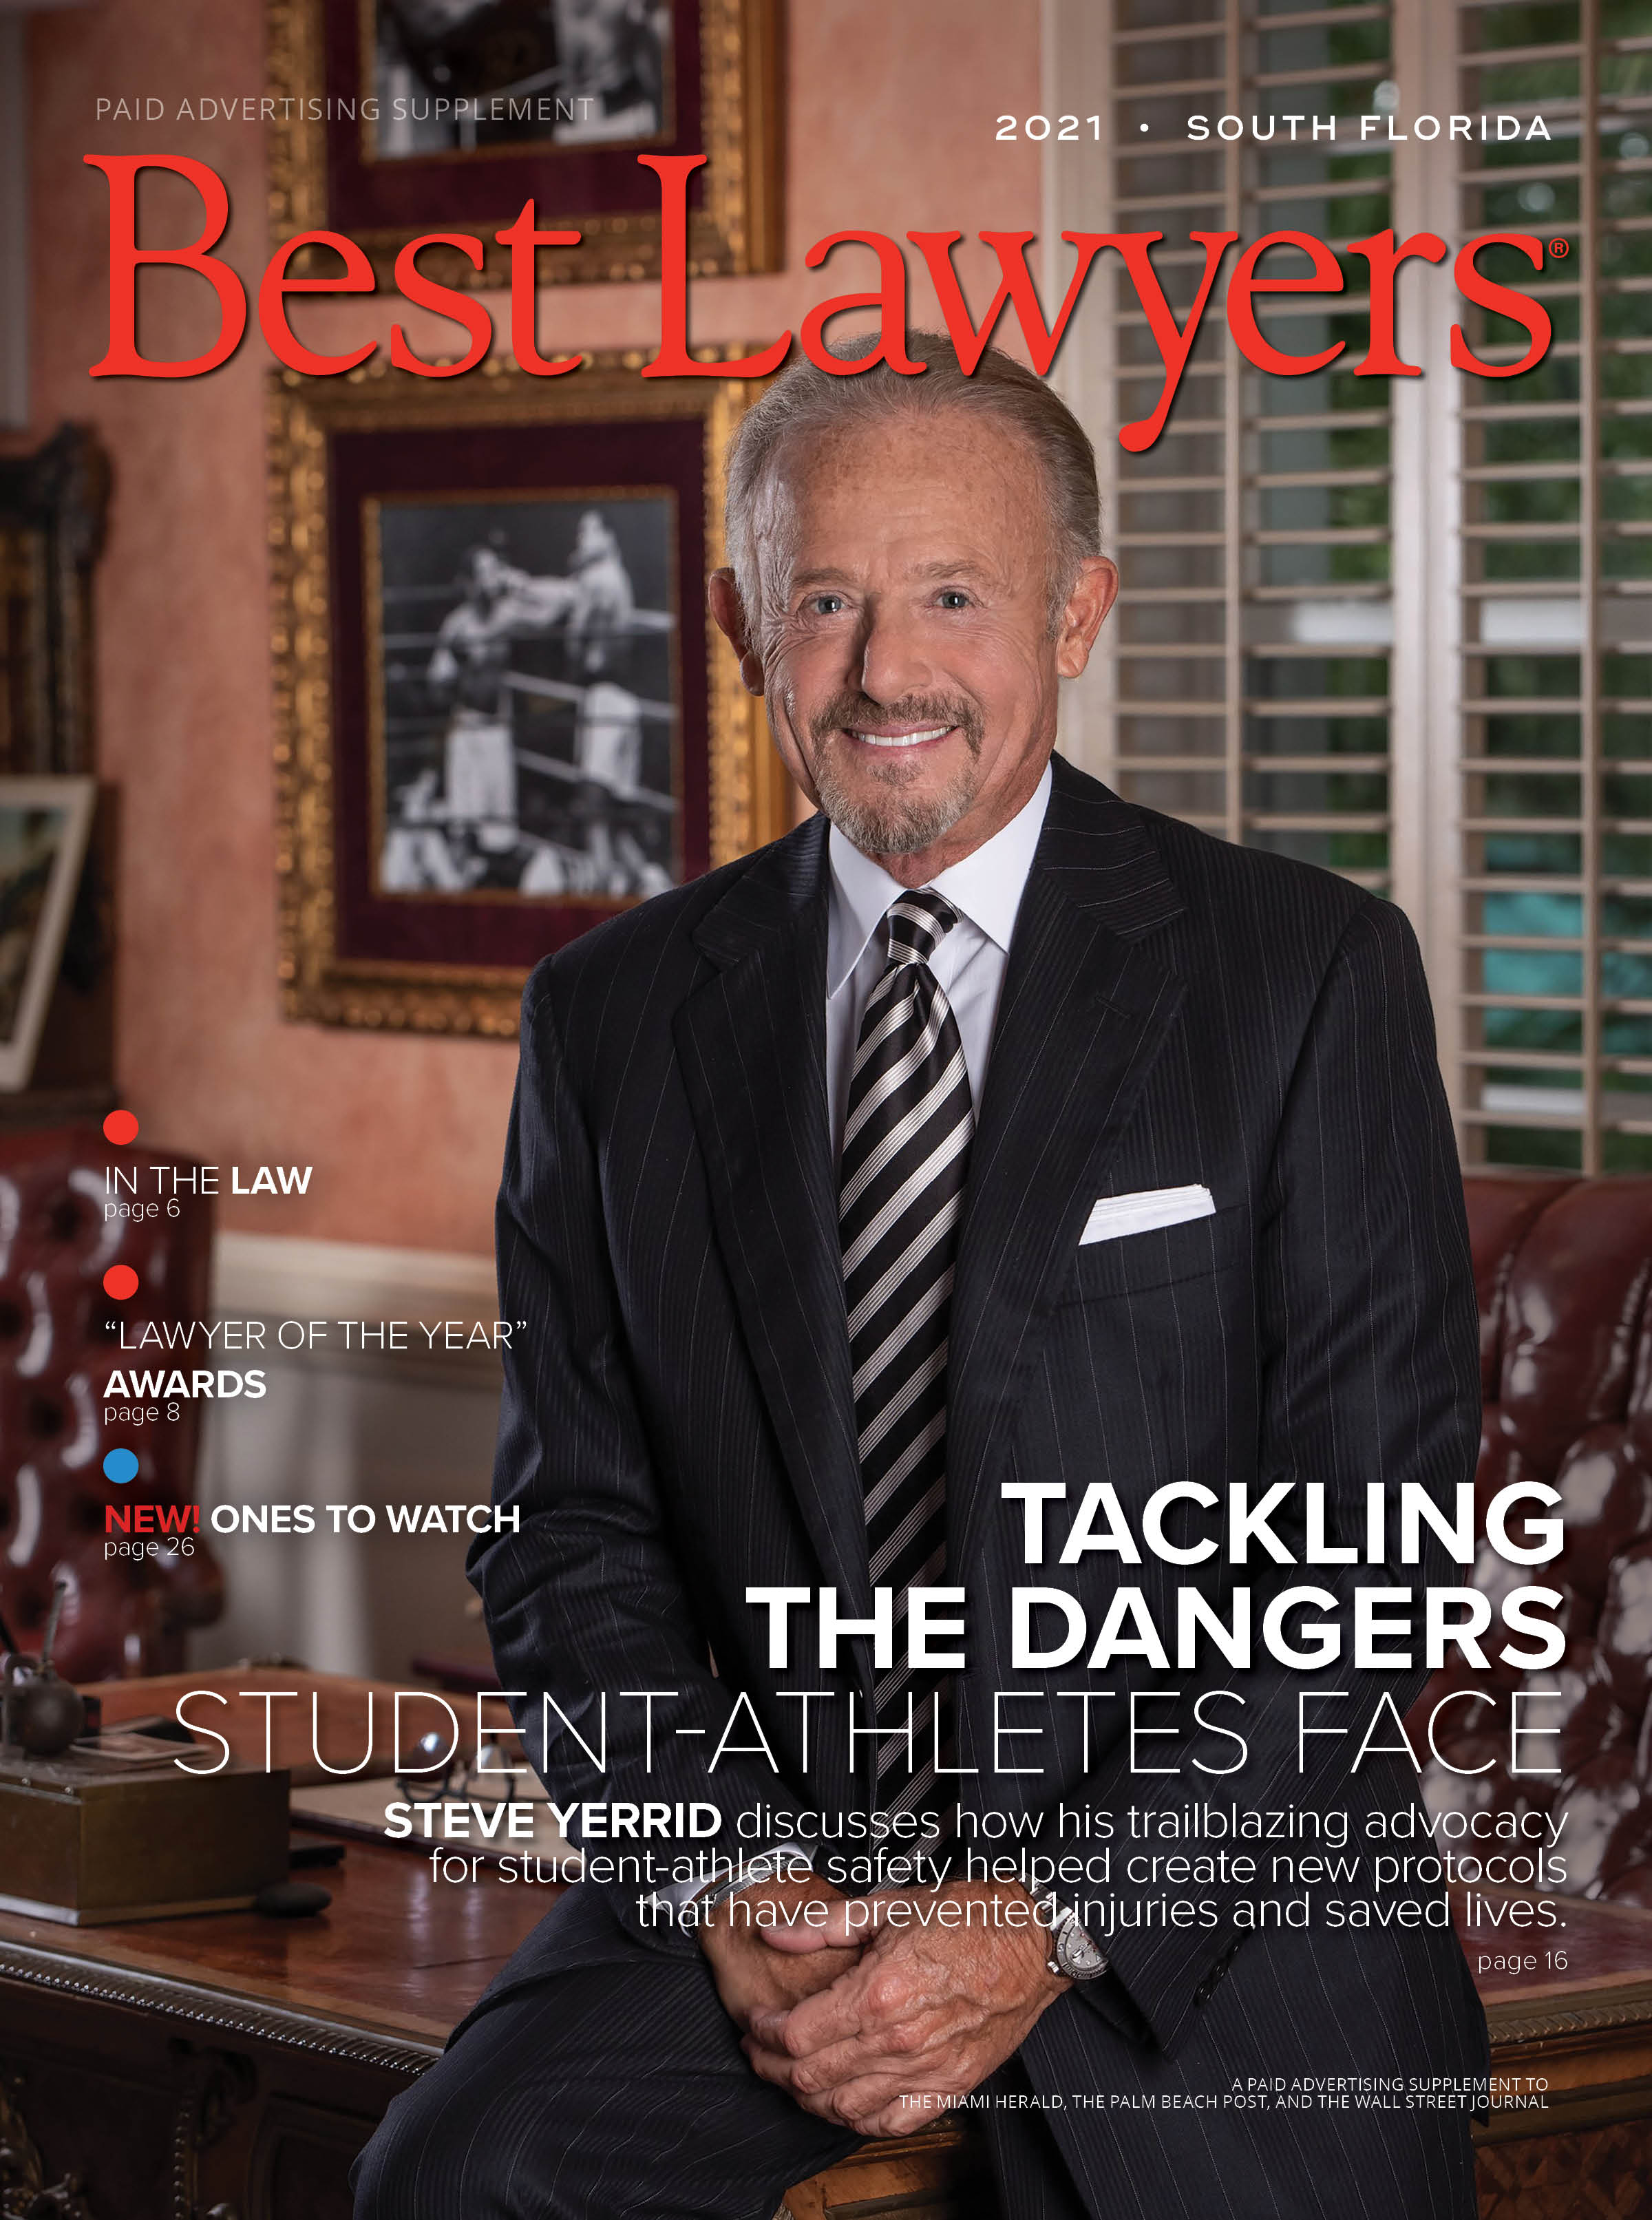 2021 South Florida's Best Lawyers cover